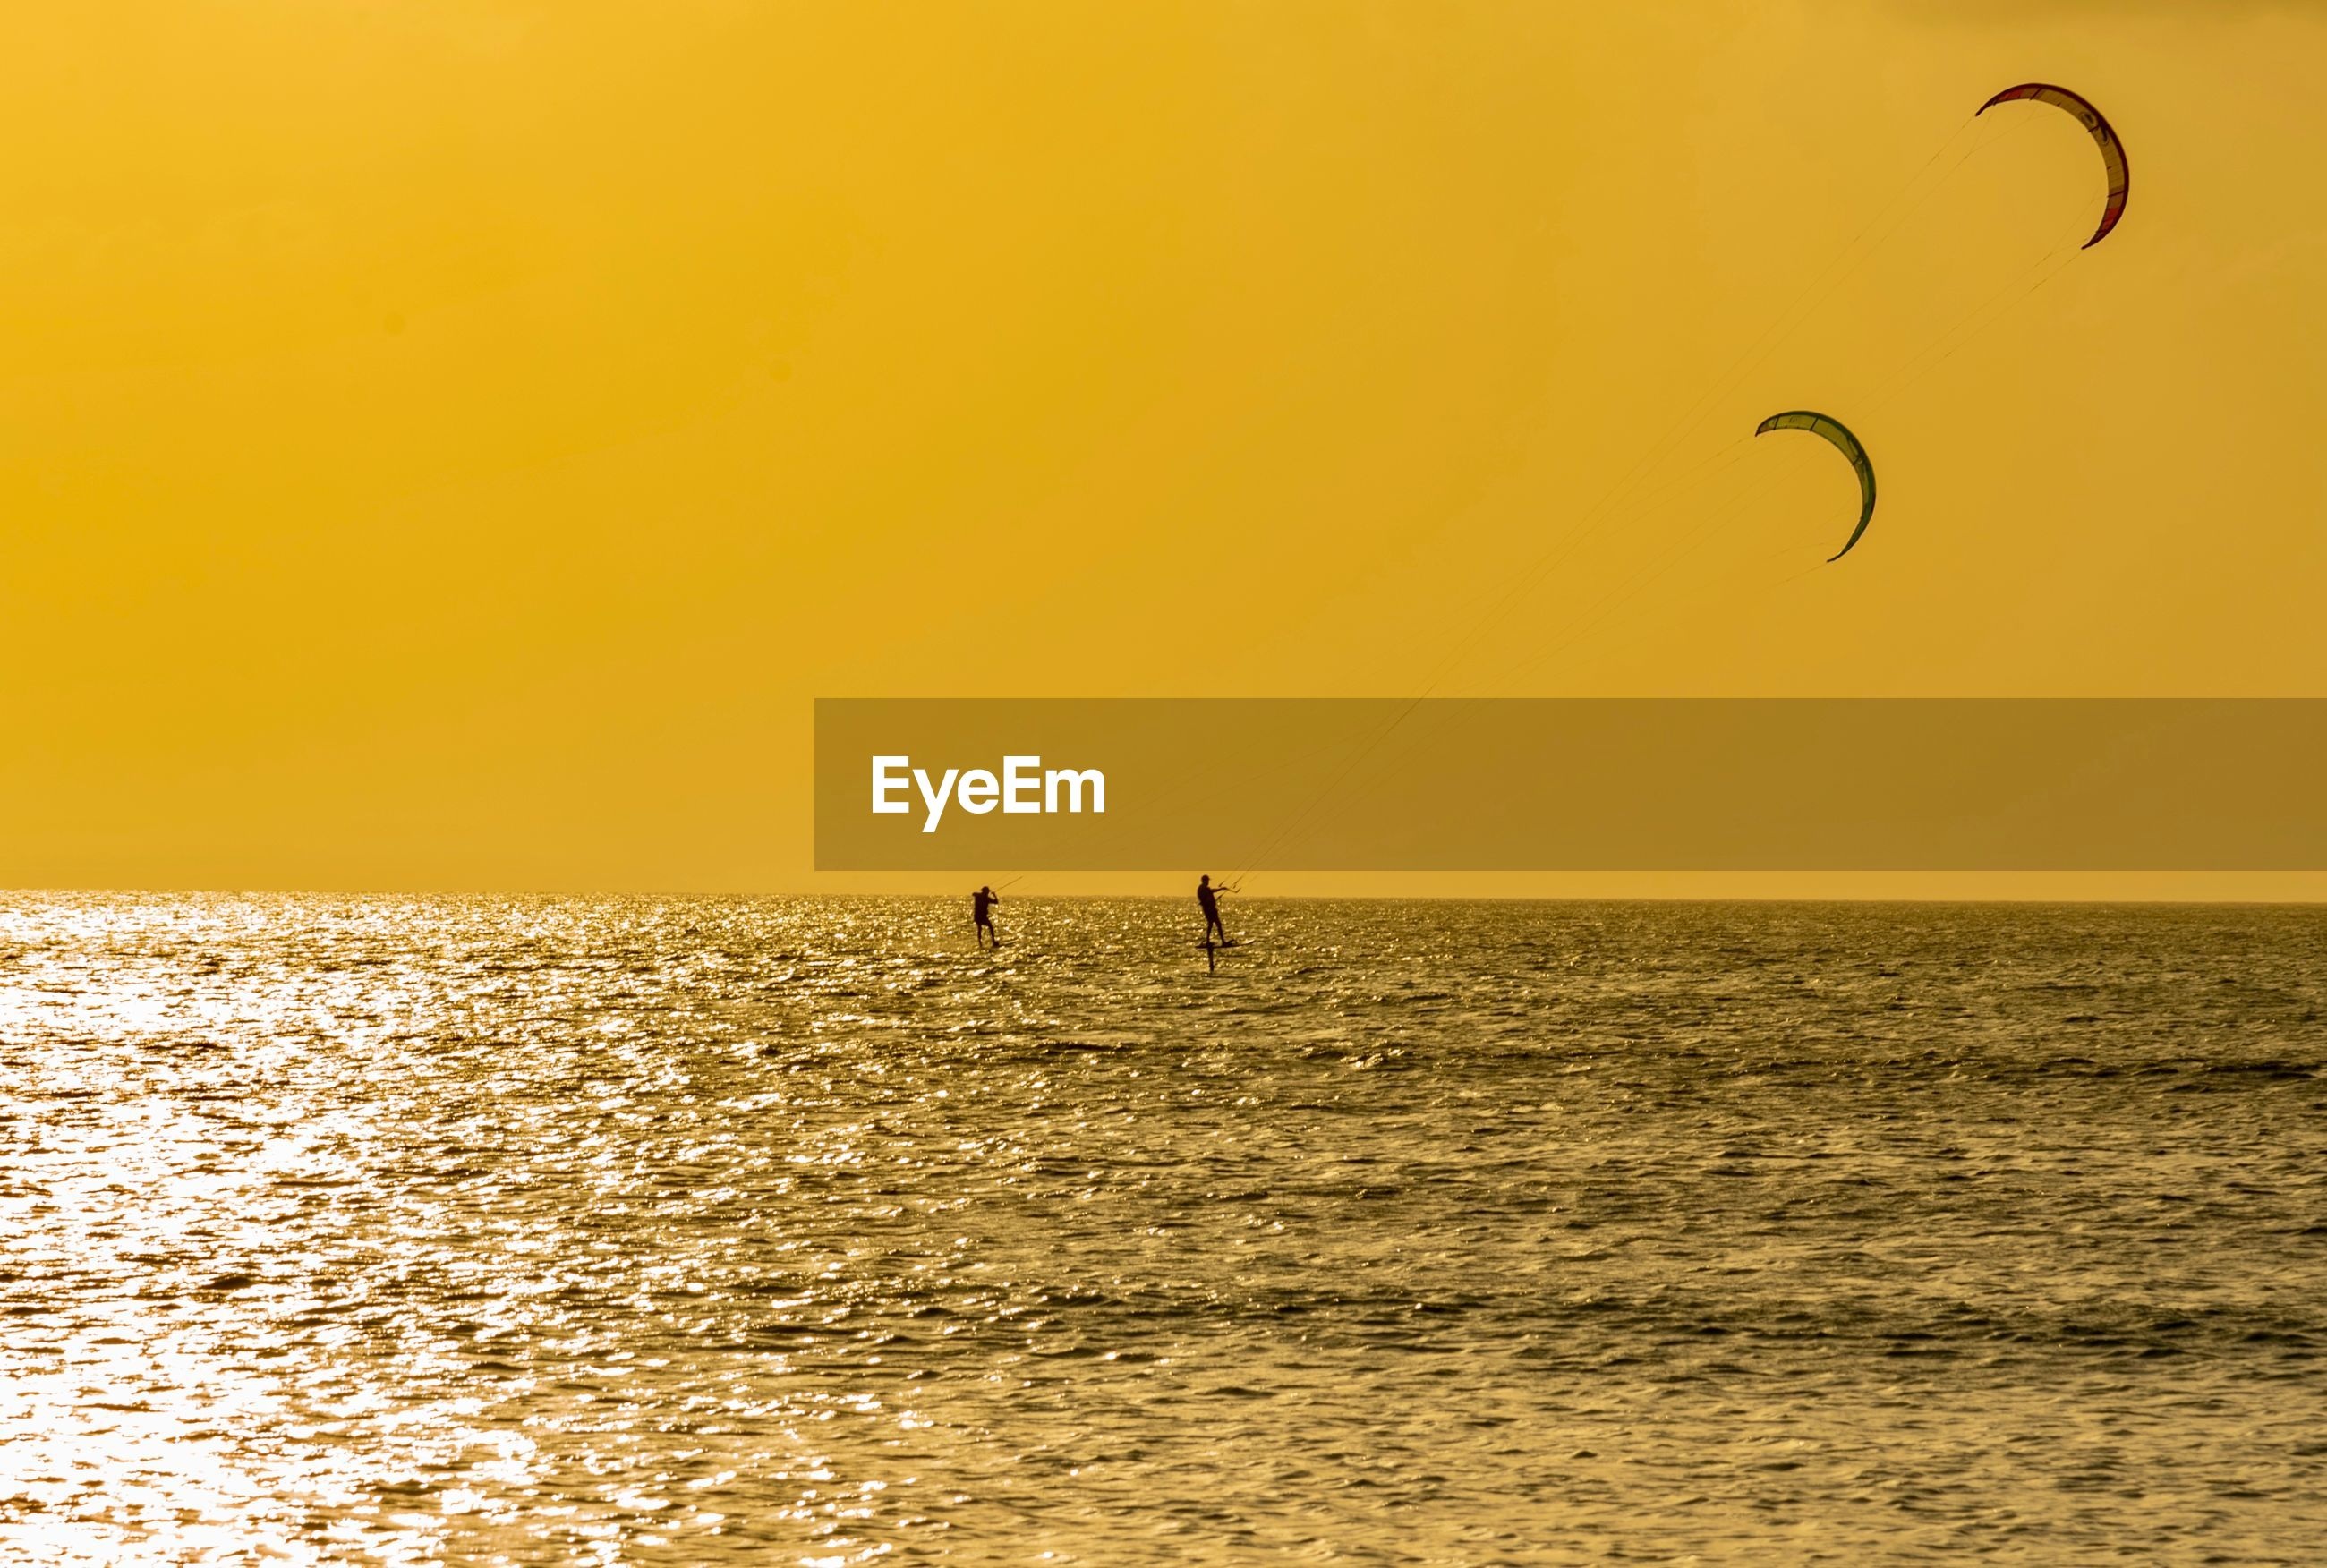 Men kiteboarding in sea against clear sky during sunset